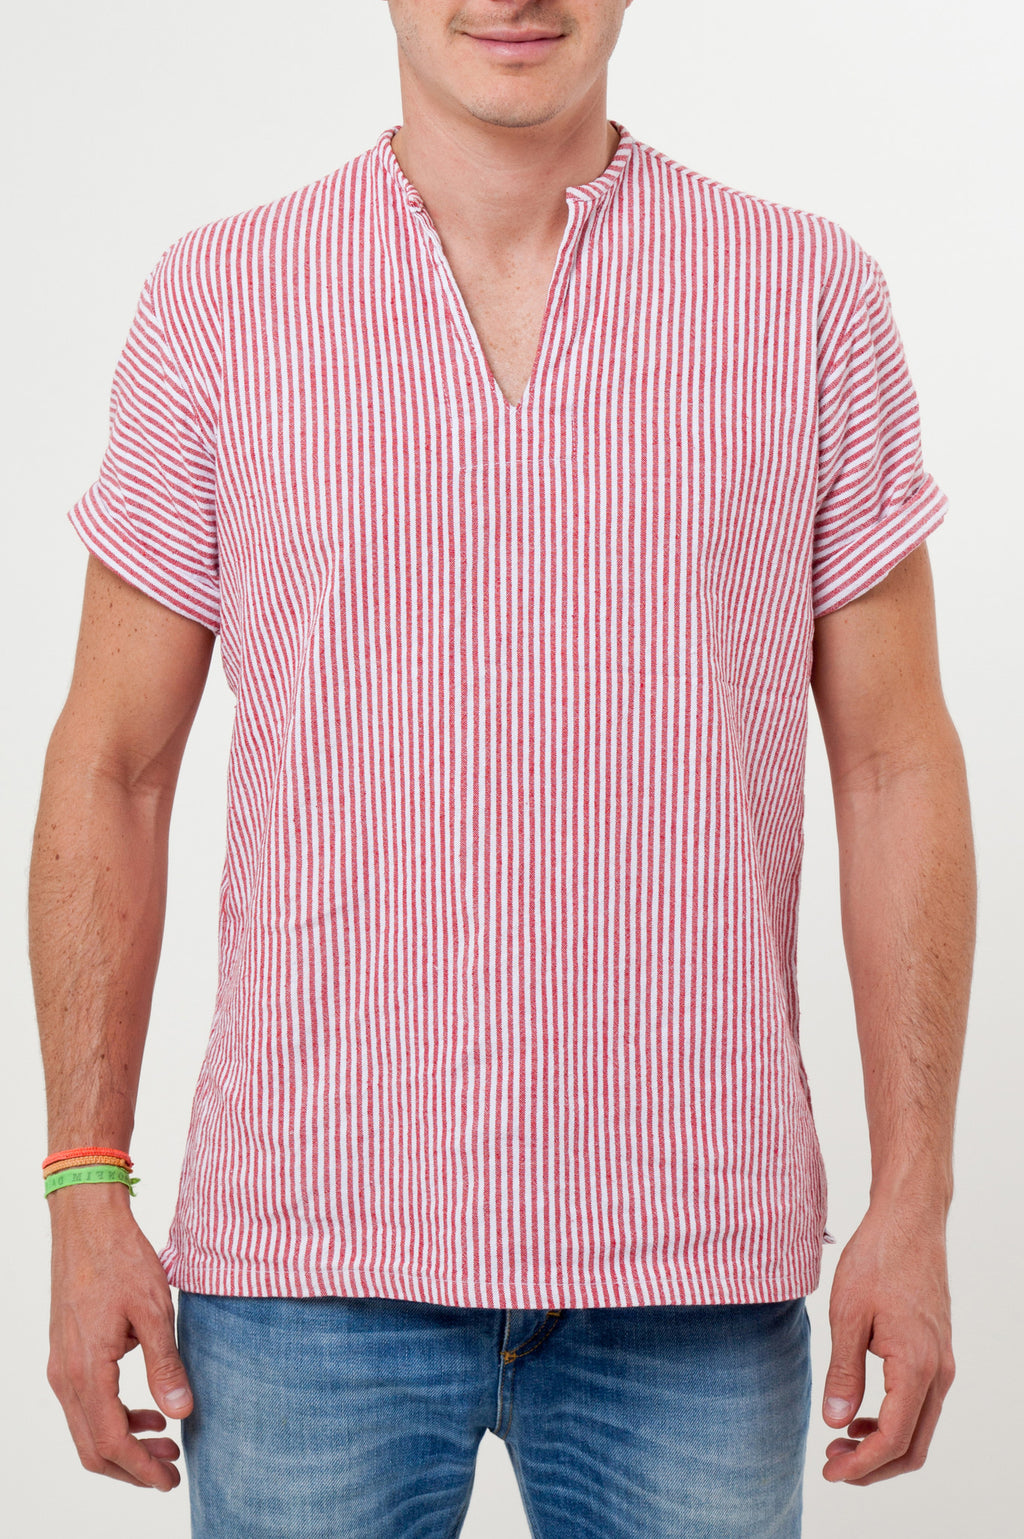 THE RIVIERA SHIRT IN RED